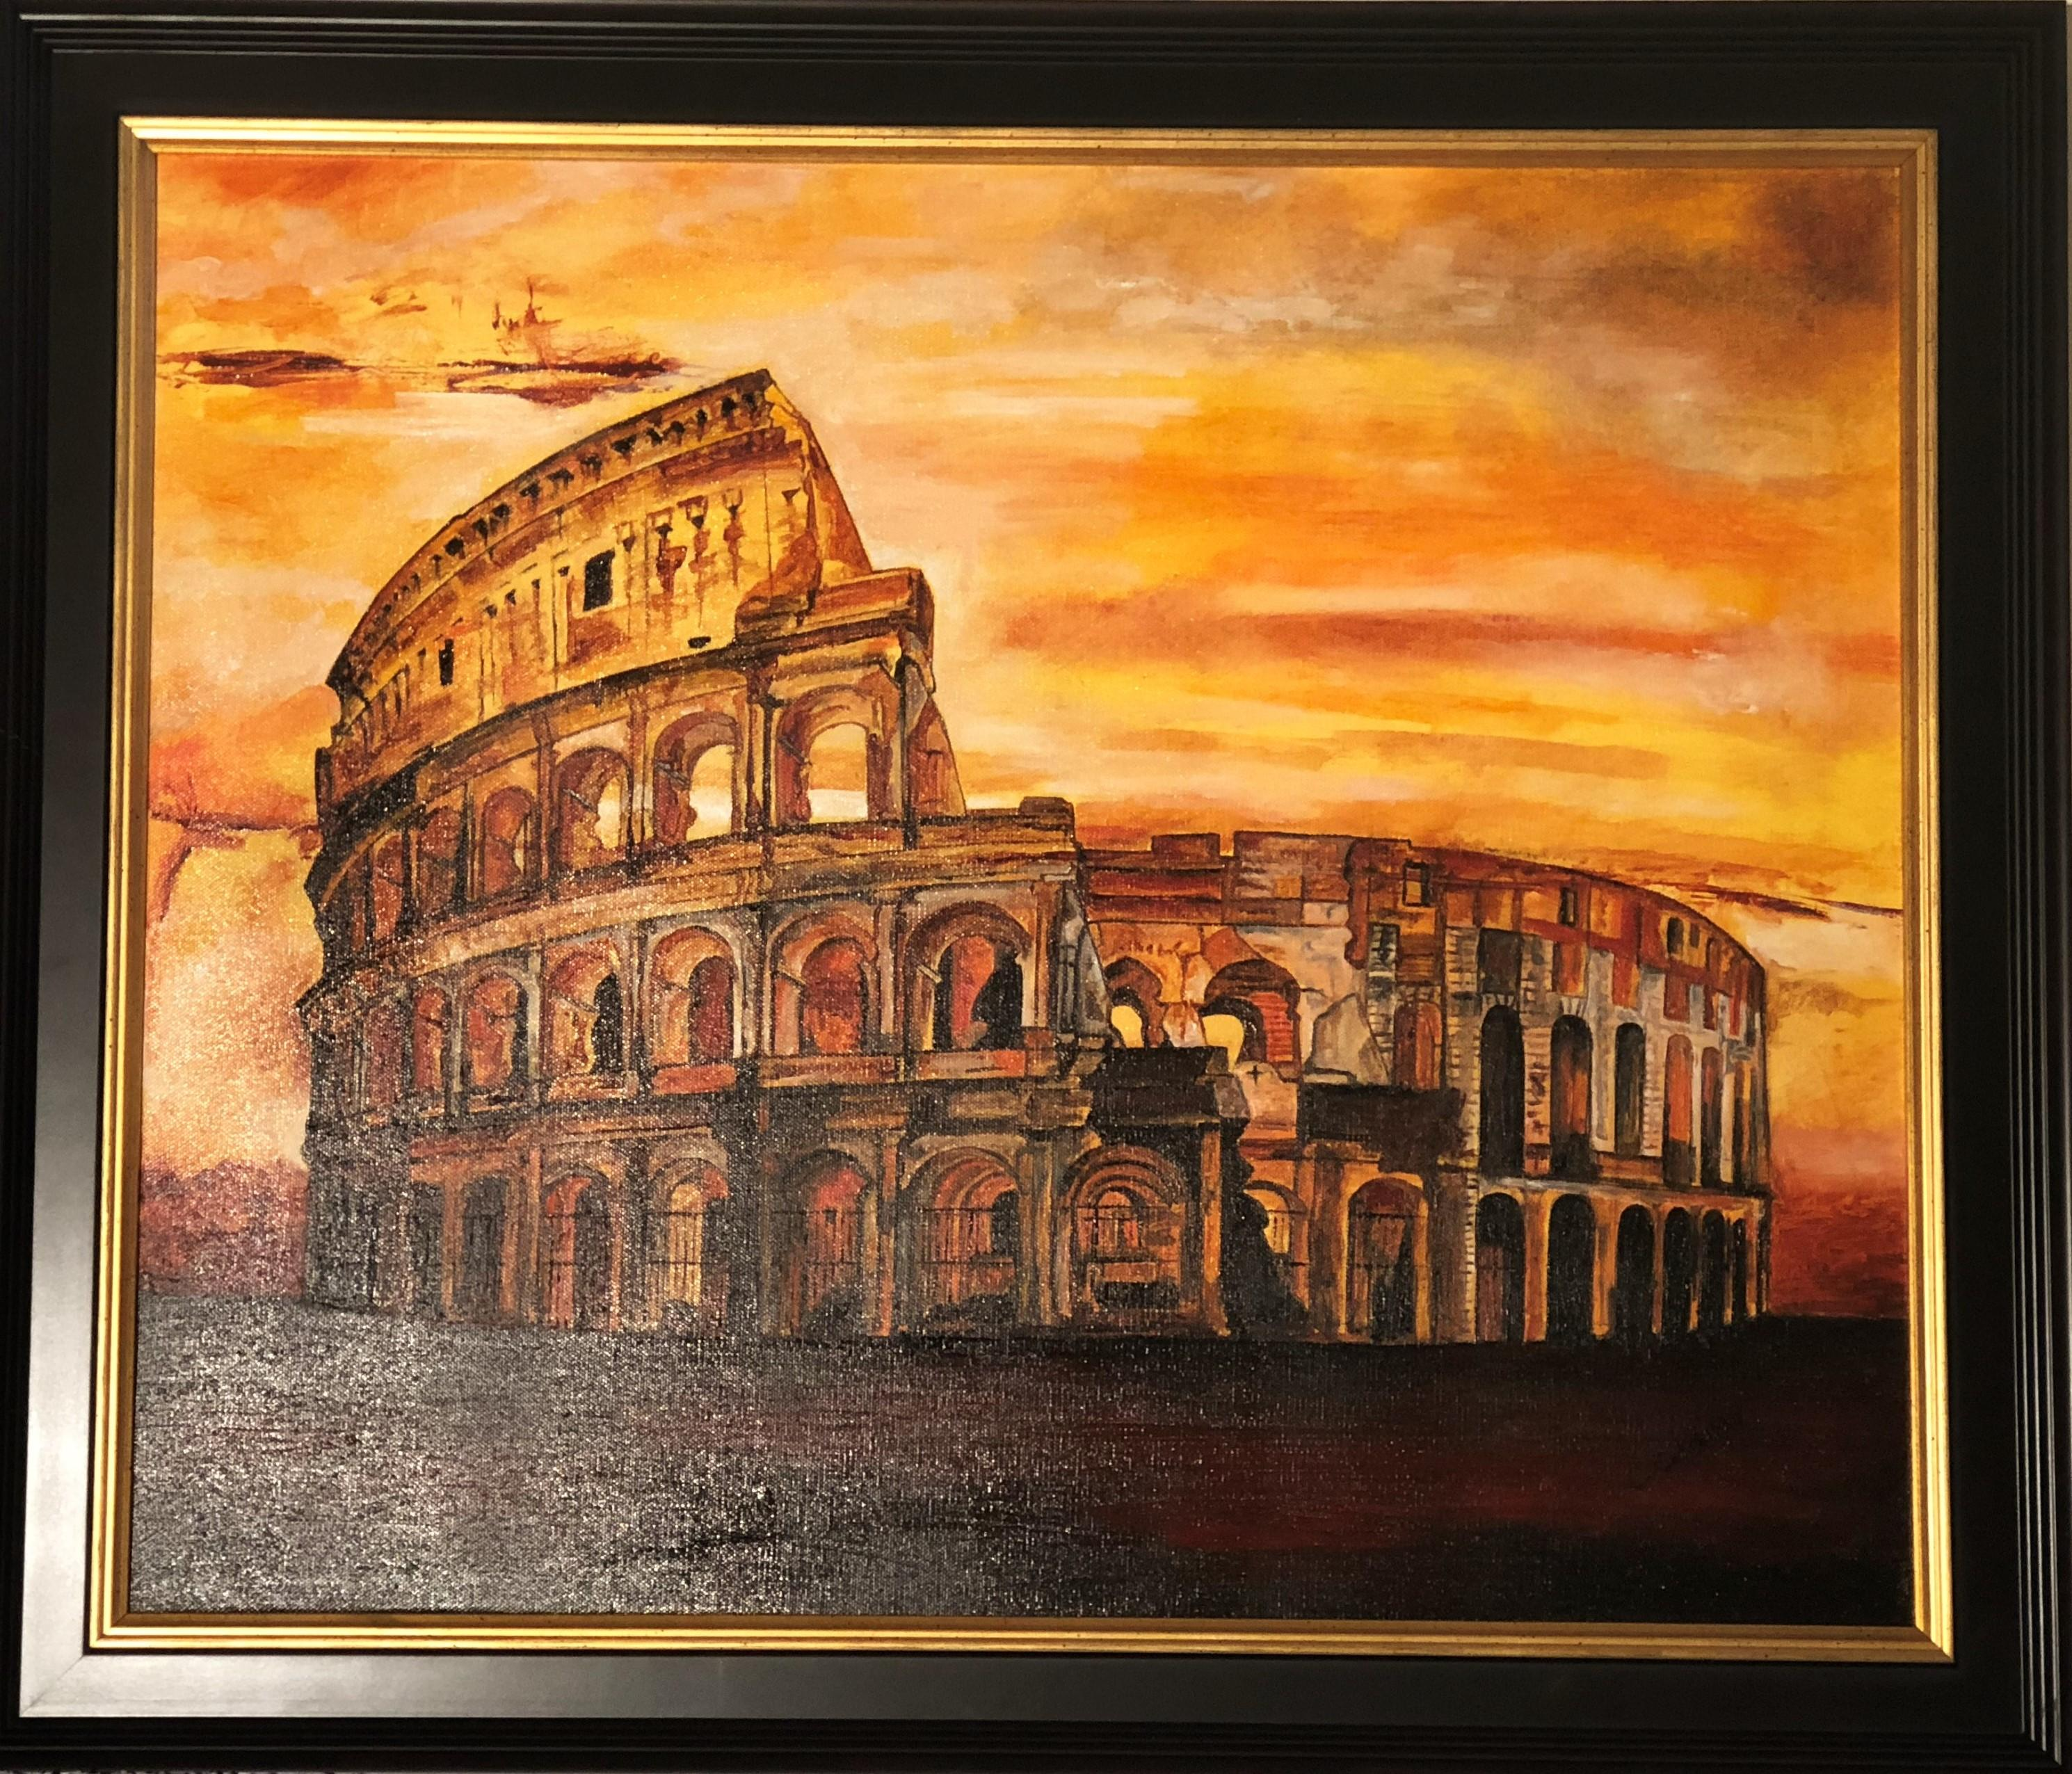 Coliseum of Rome - Original Oil on Canvas Painting by Catherine Colosimo